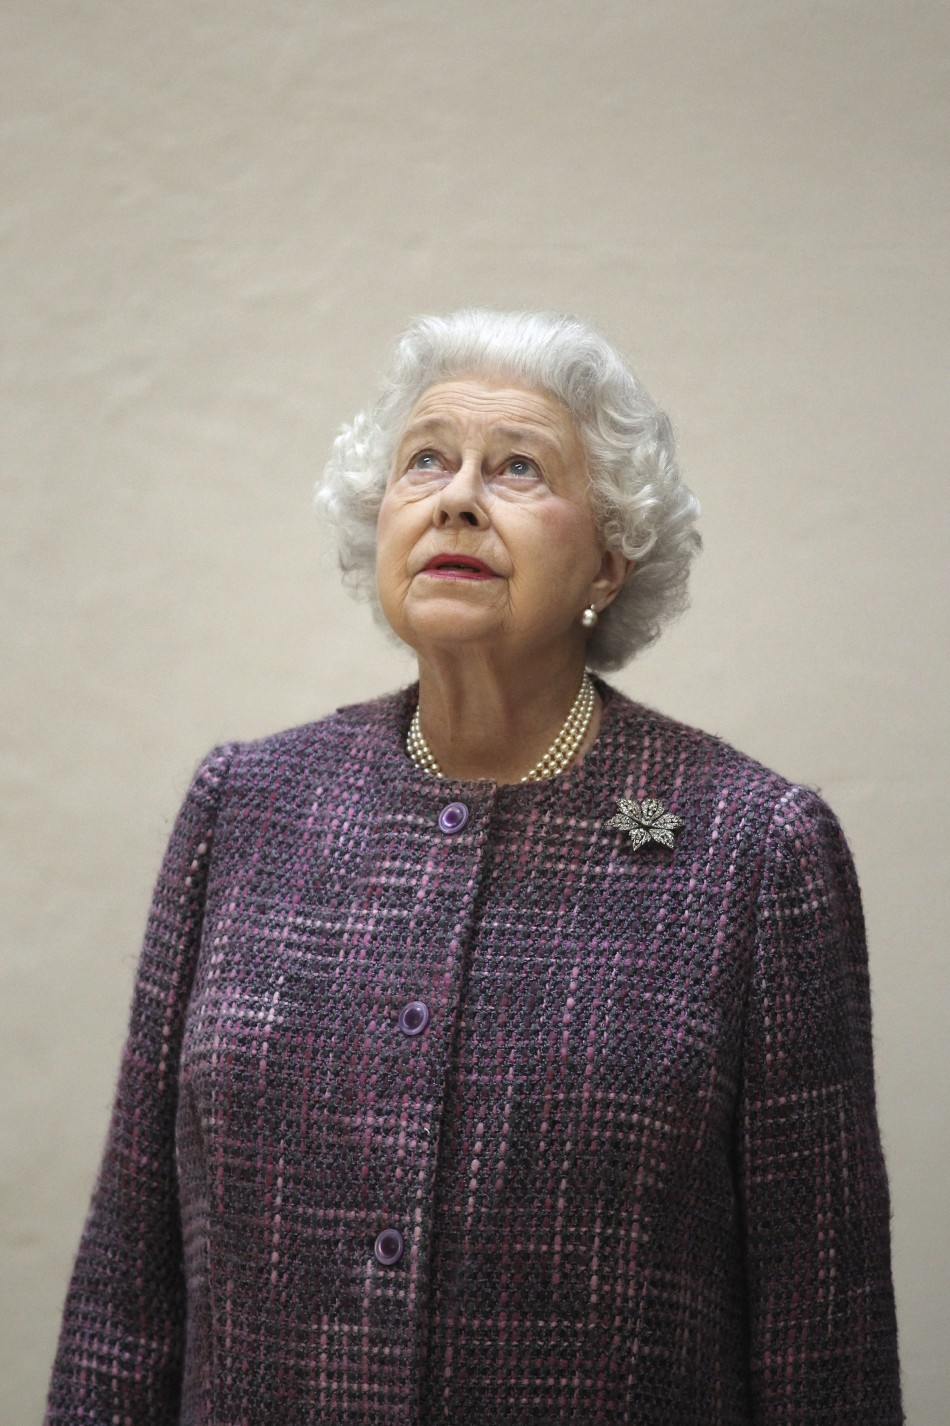 Britain039s Queen Elizabeth attends the official reopening of Kensington Palace in London